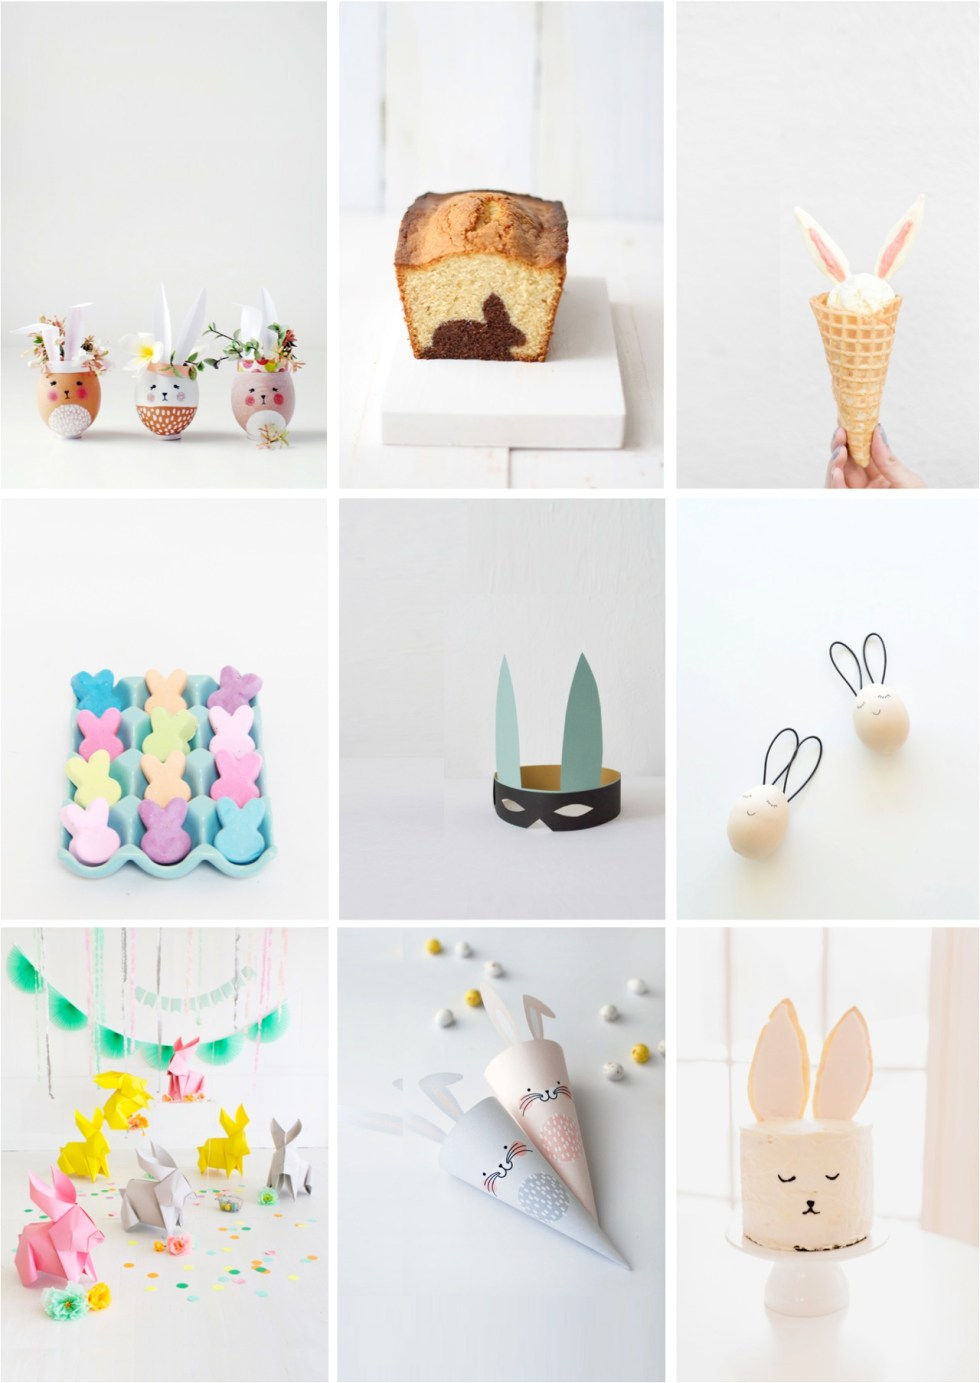 9 of the best Easter bunny crafts